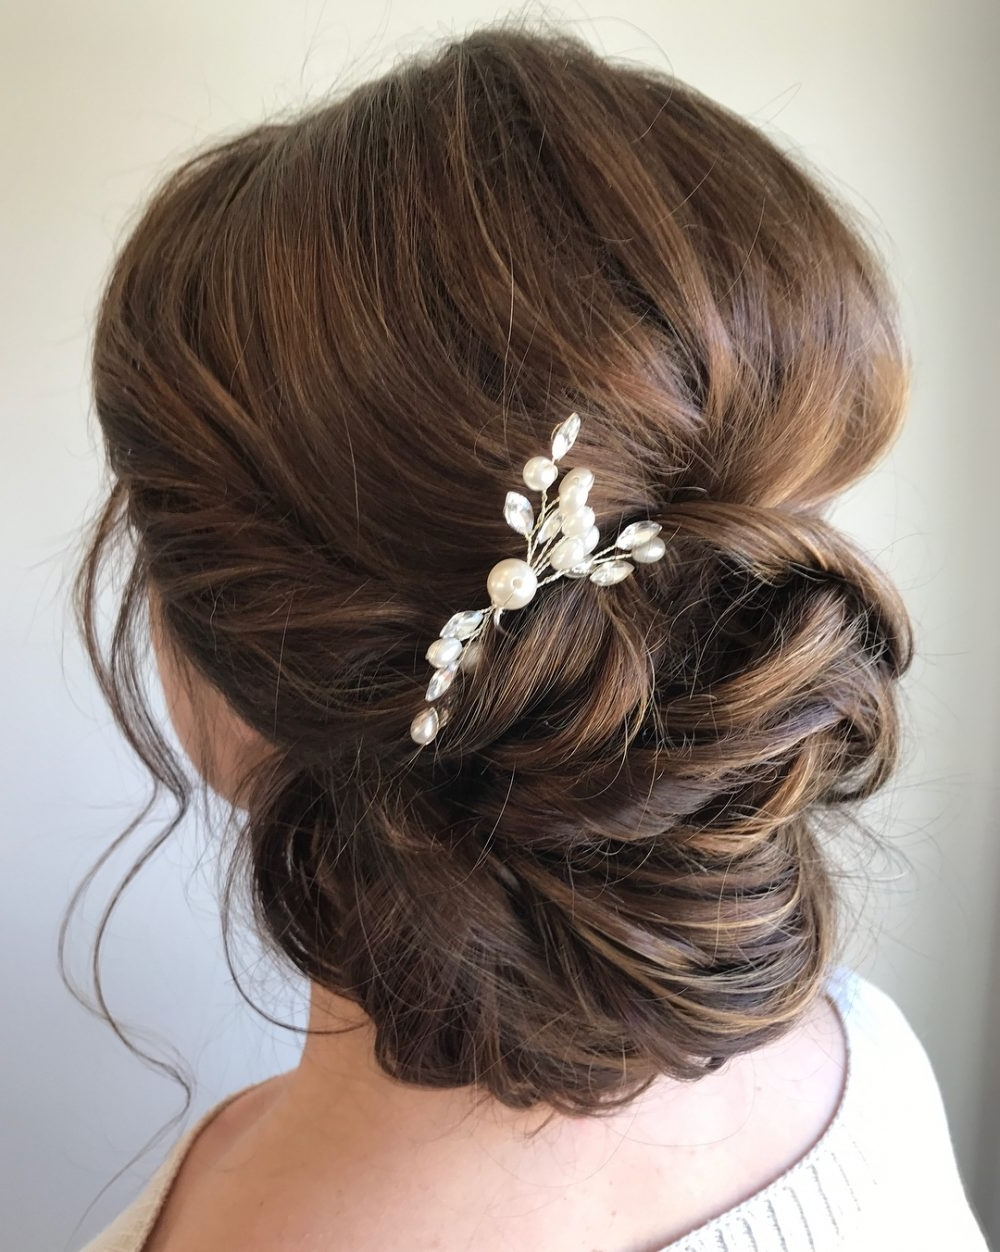 33 Breathtaking Loose Updos That Are Trendy For 2018 Pertaining To Long Hair Updo Accessories (View 8 of 15)